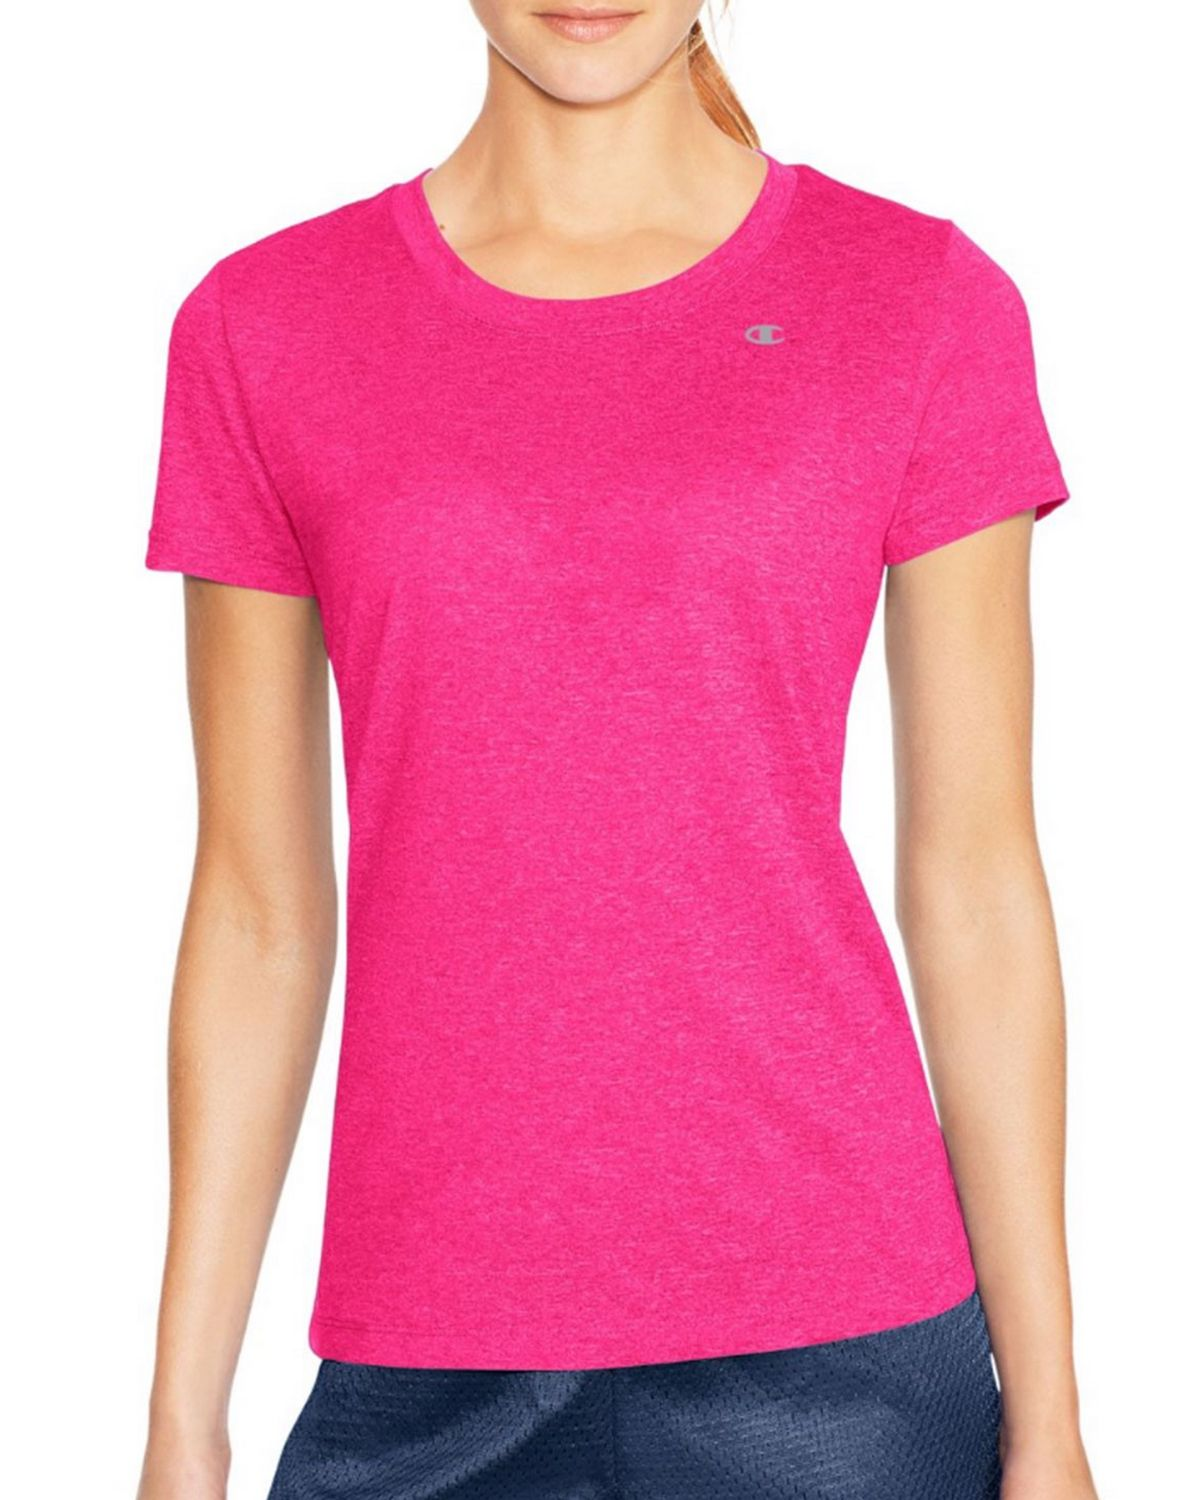 Champion 7963 Vapor PowerTrain Short Sleeve Heather Tee - Pop Art Pink Heather - M 7963